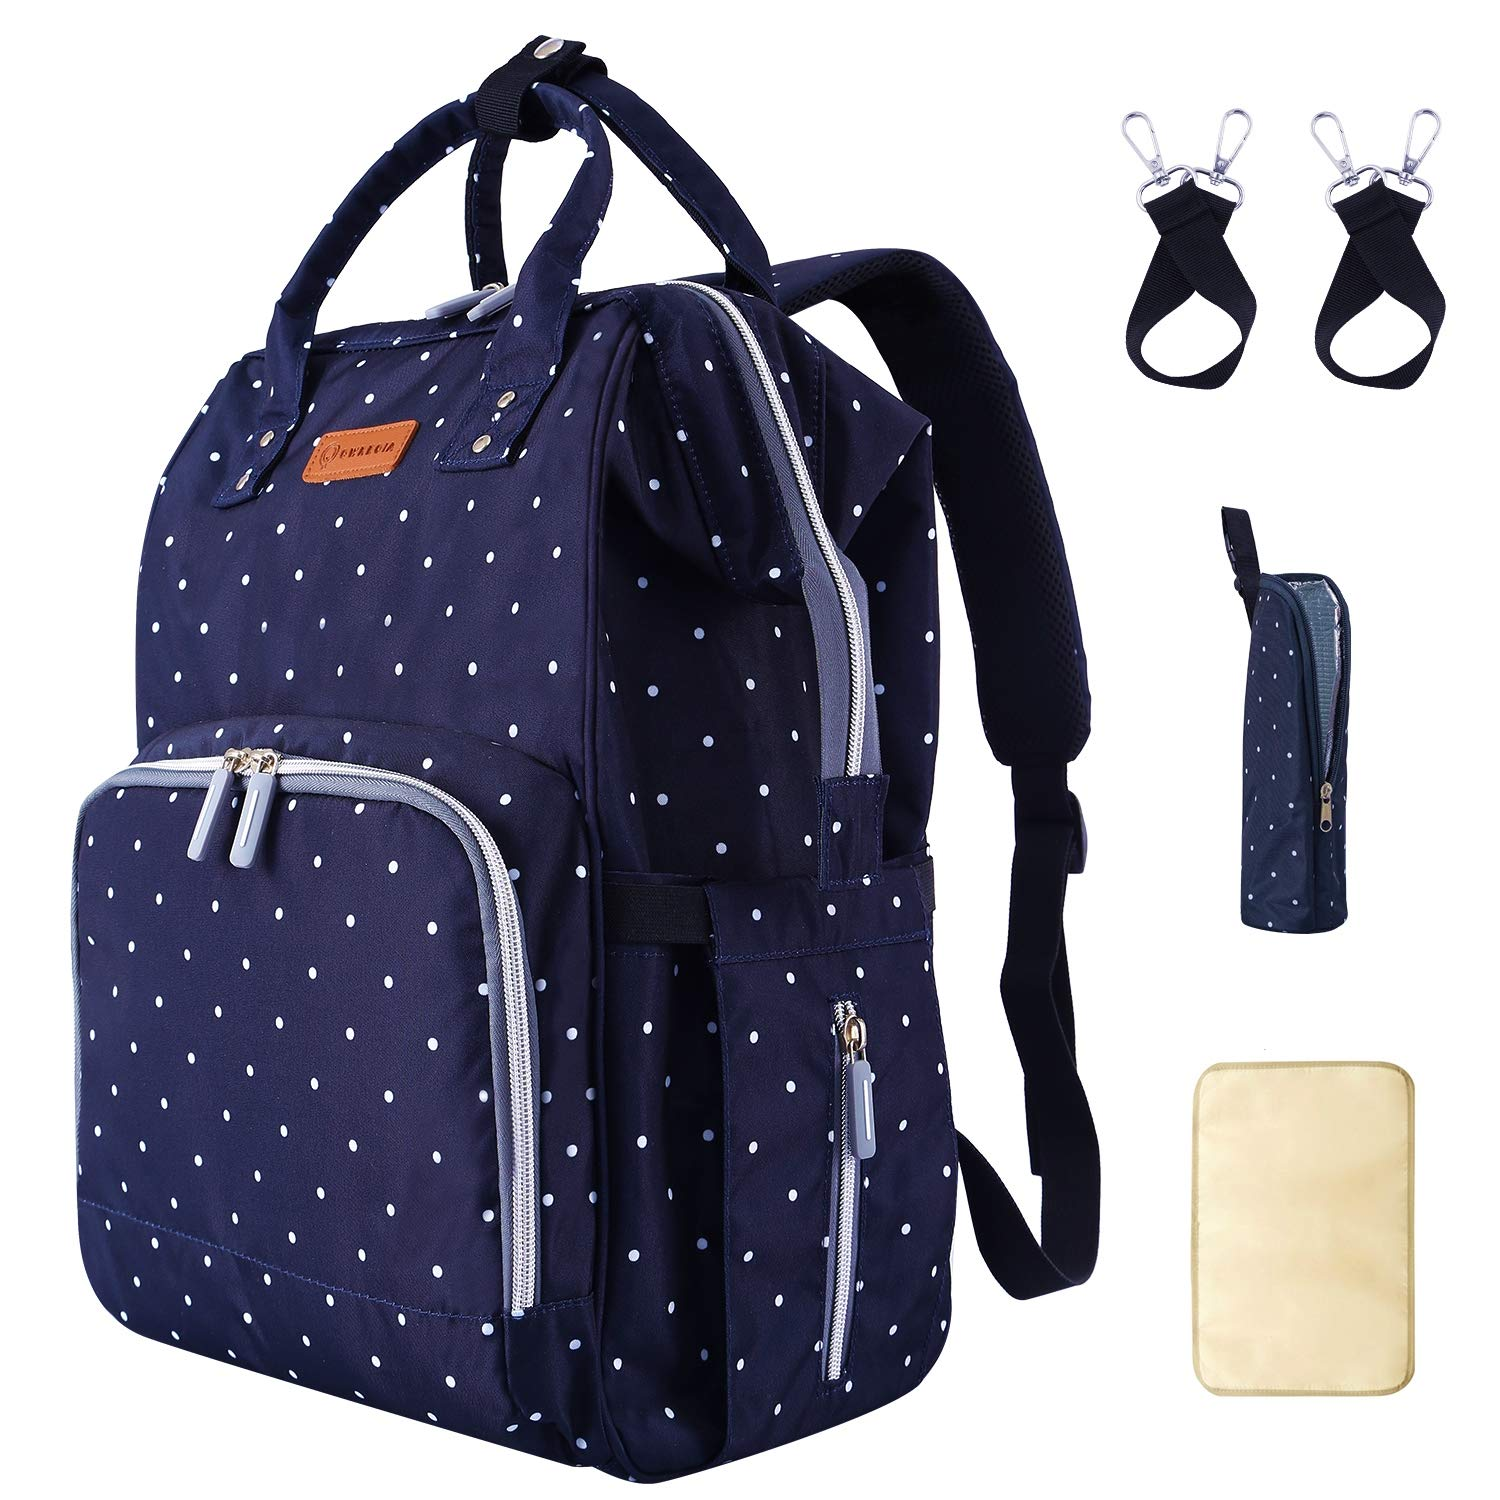 Diaper Bag Backpack for baby with USB Charging Port Stroller Straps Insulated Pocket and Changing Pad For Women/Girls/Mum/Toddler Polka Dot Blue by Qwreoia …